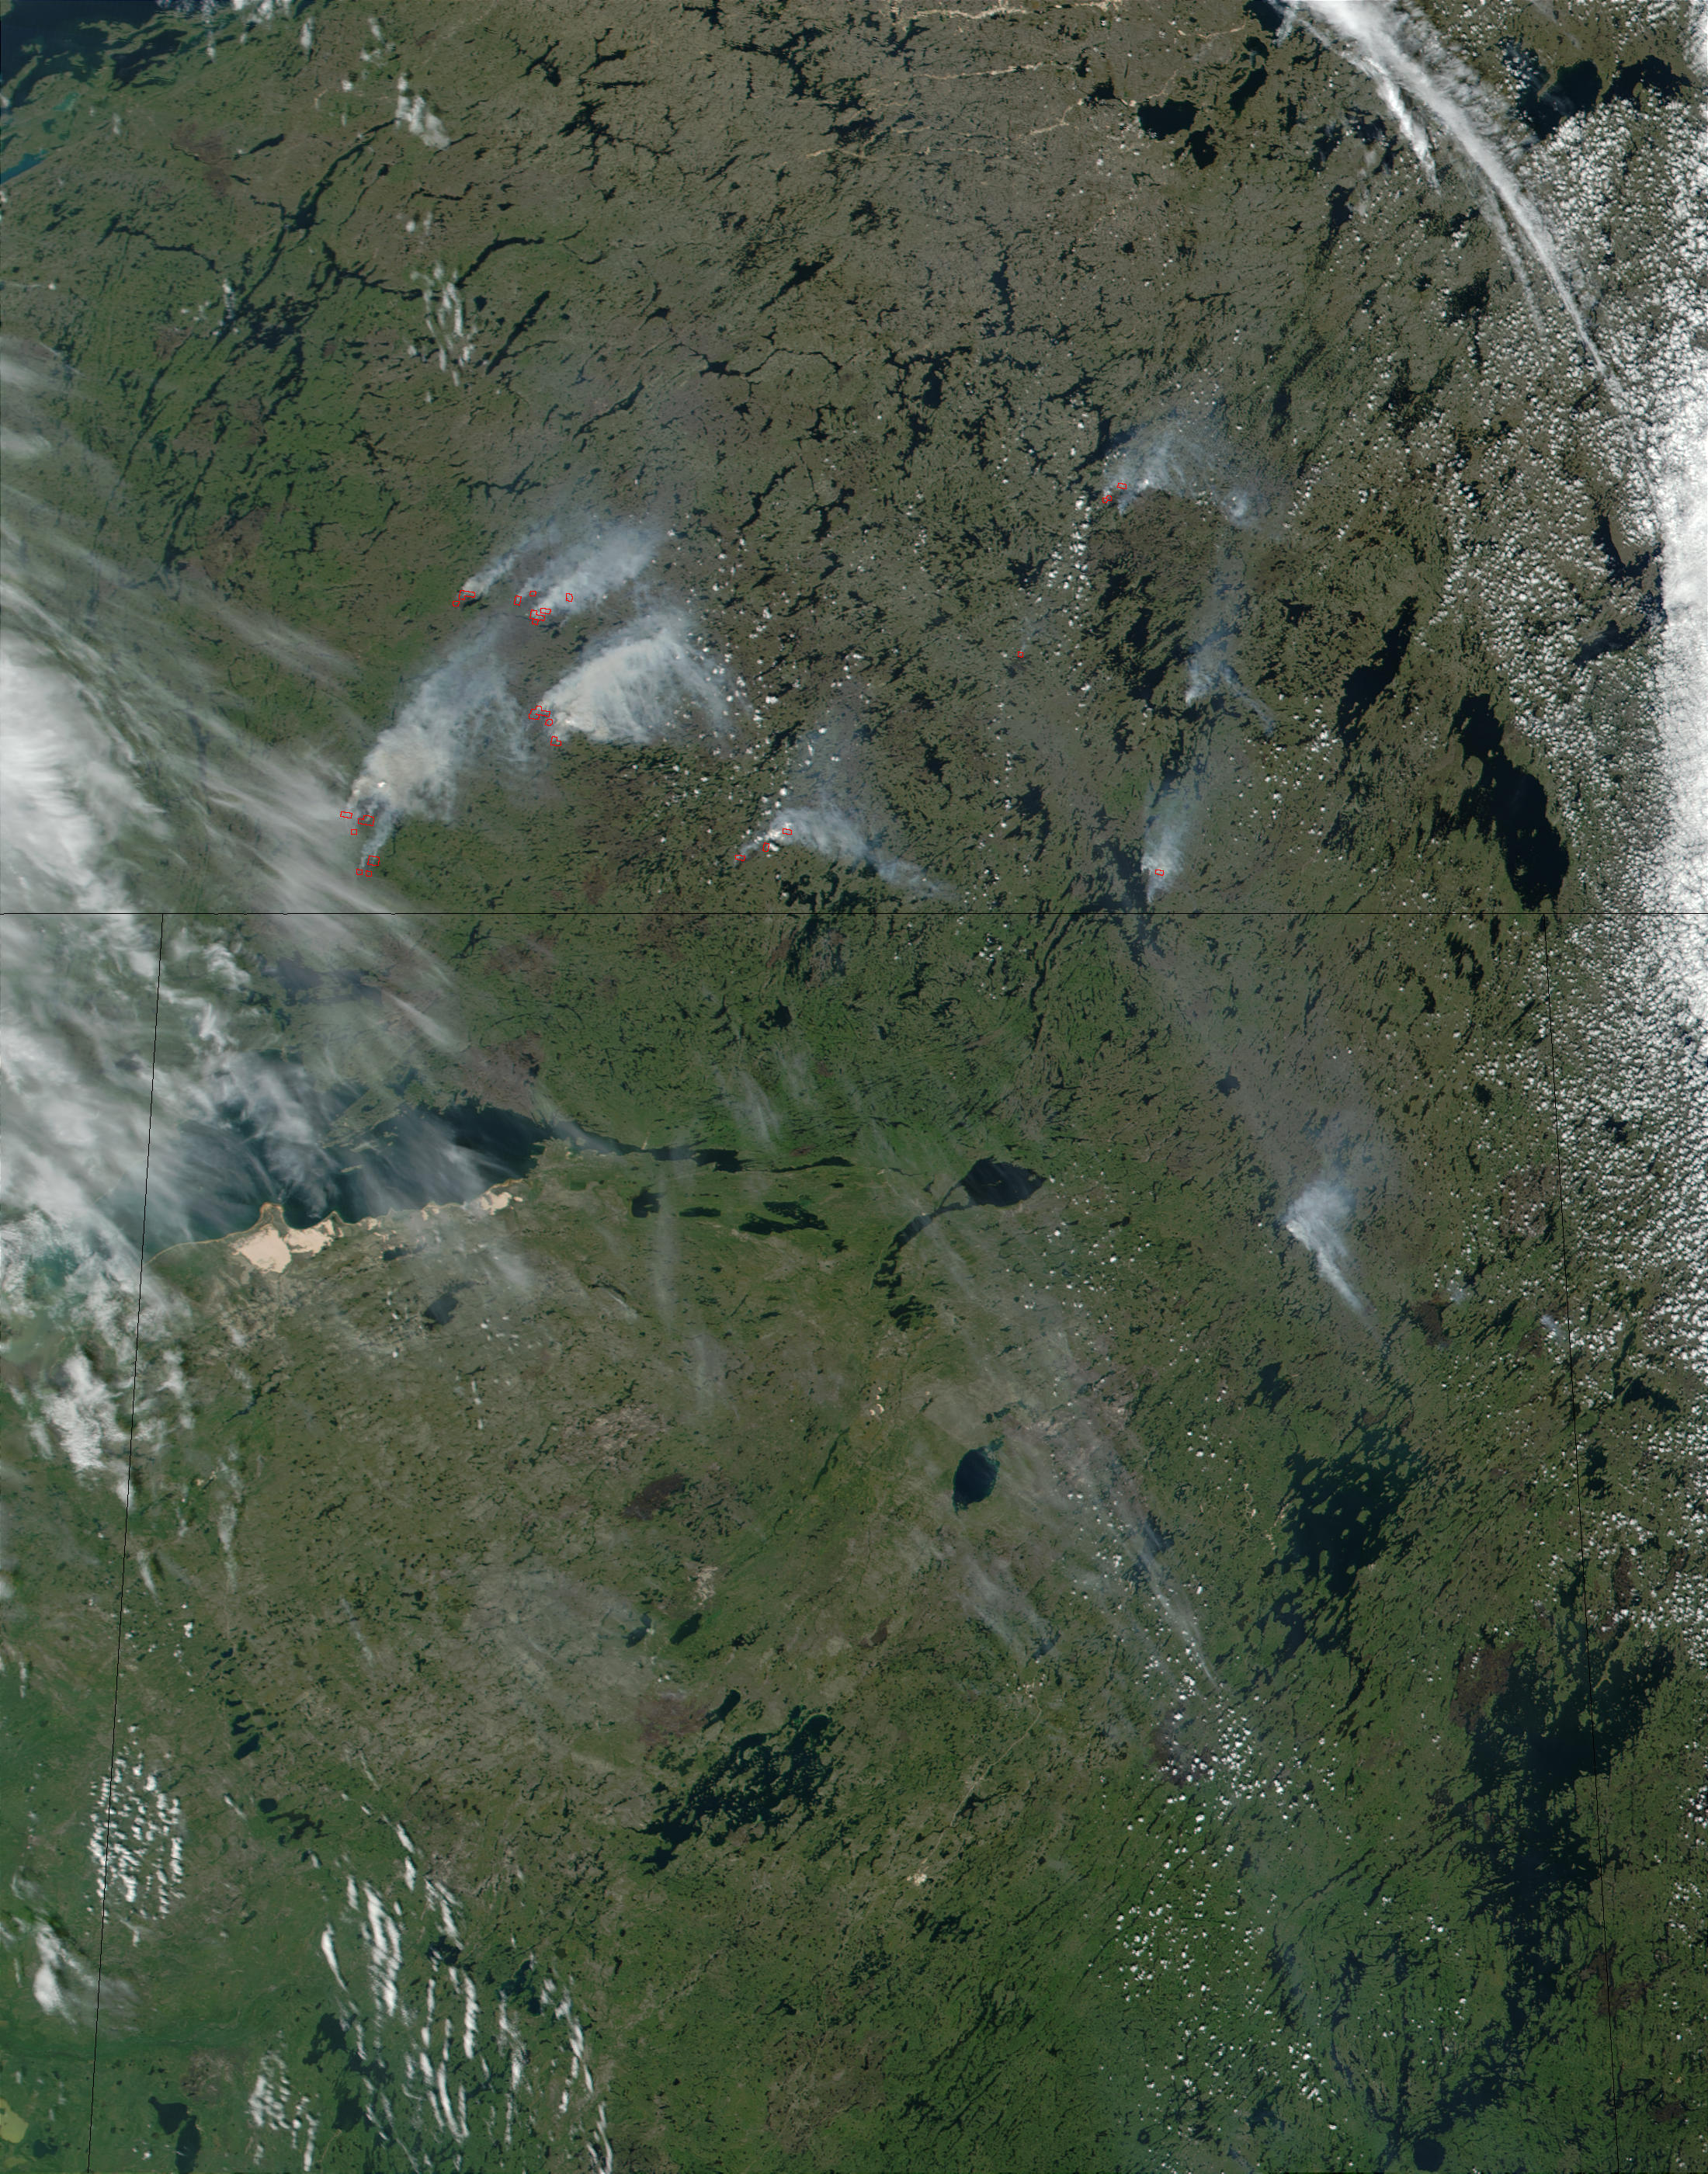 Fires in Northwest Territories, Canada